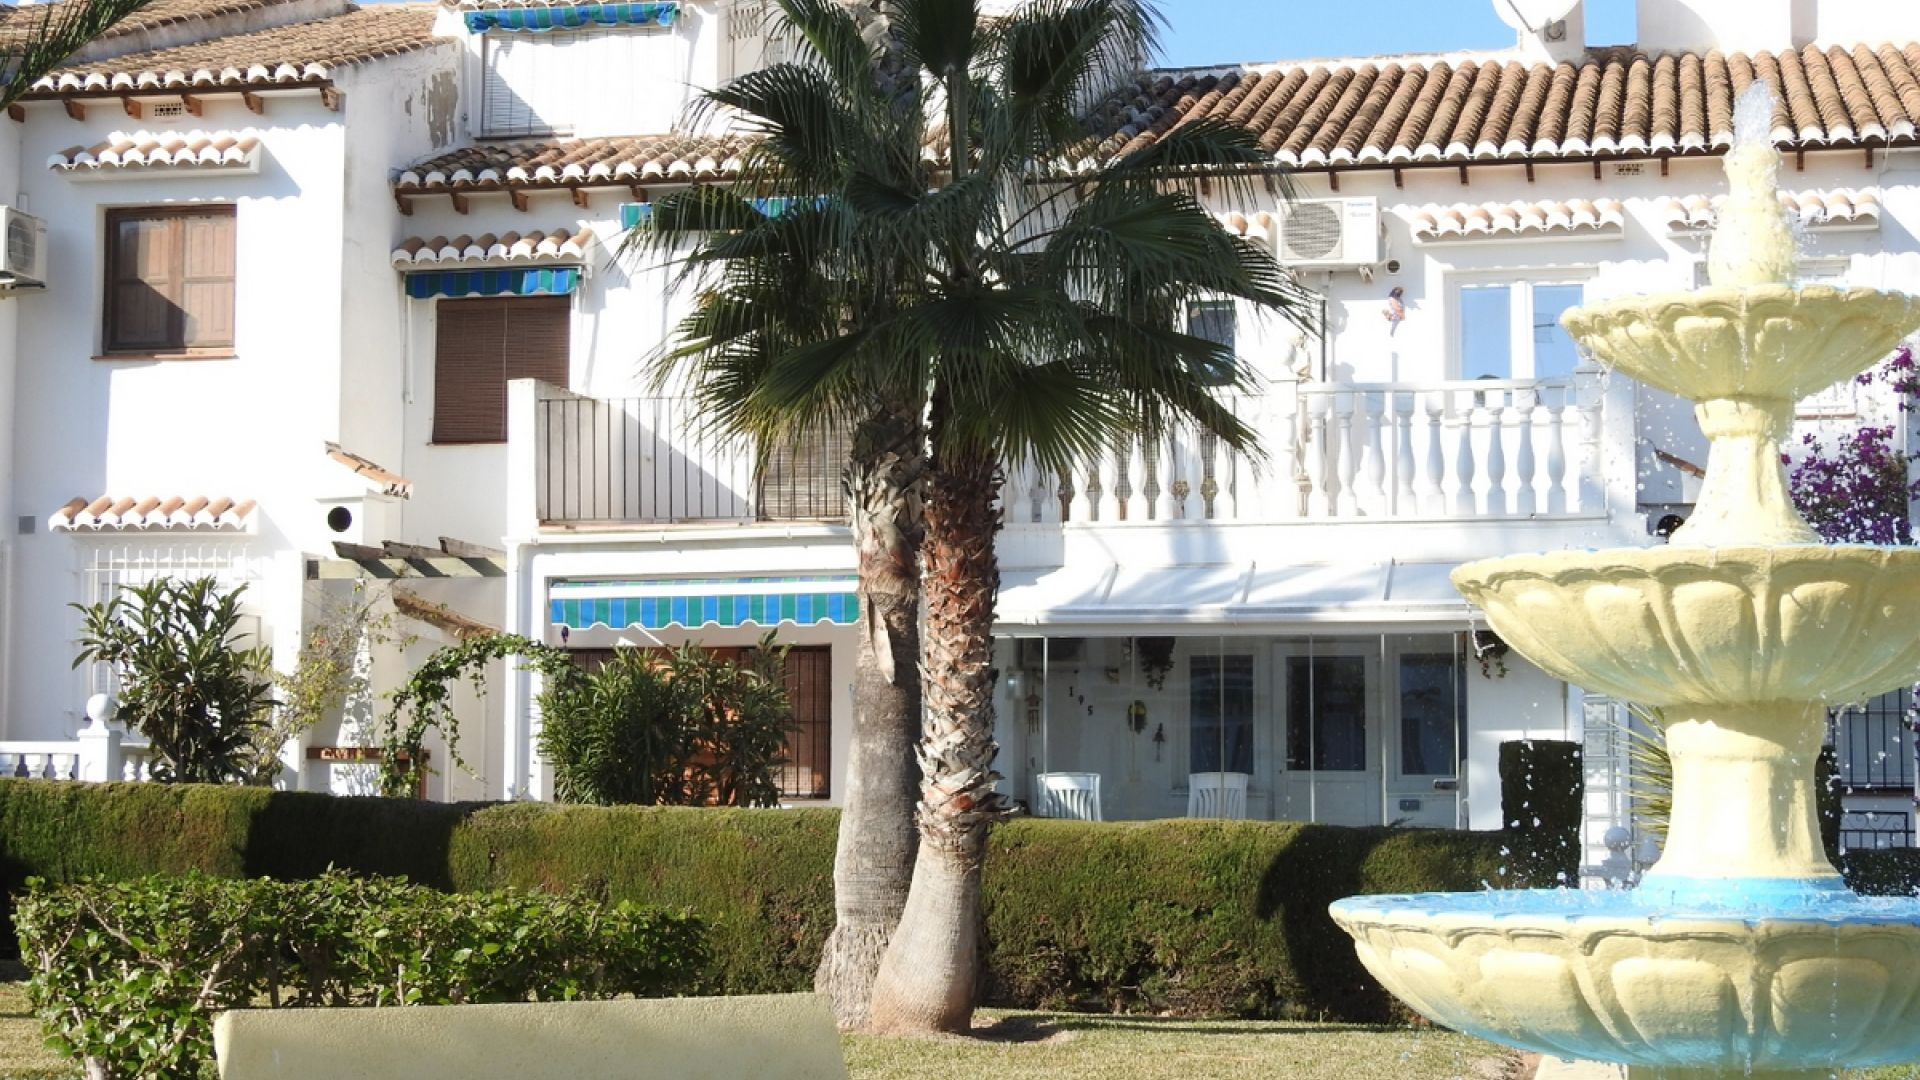 Bungalow in Torrevieja, Alicante, Spain